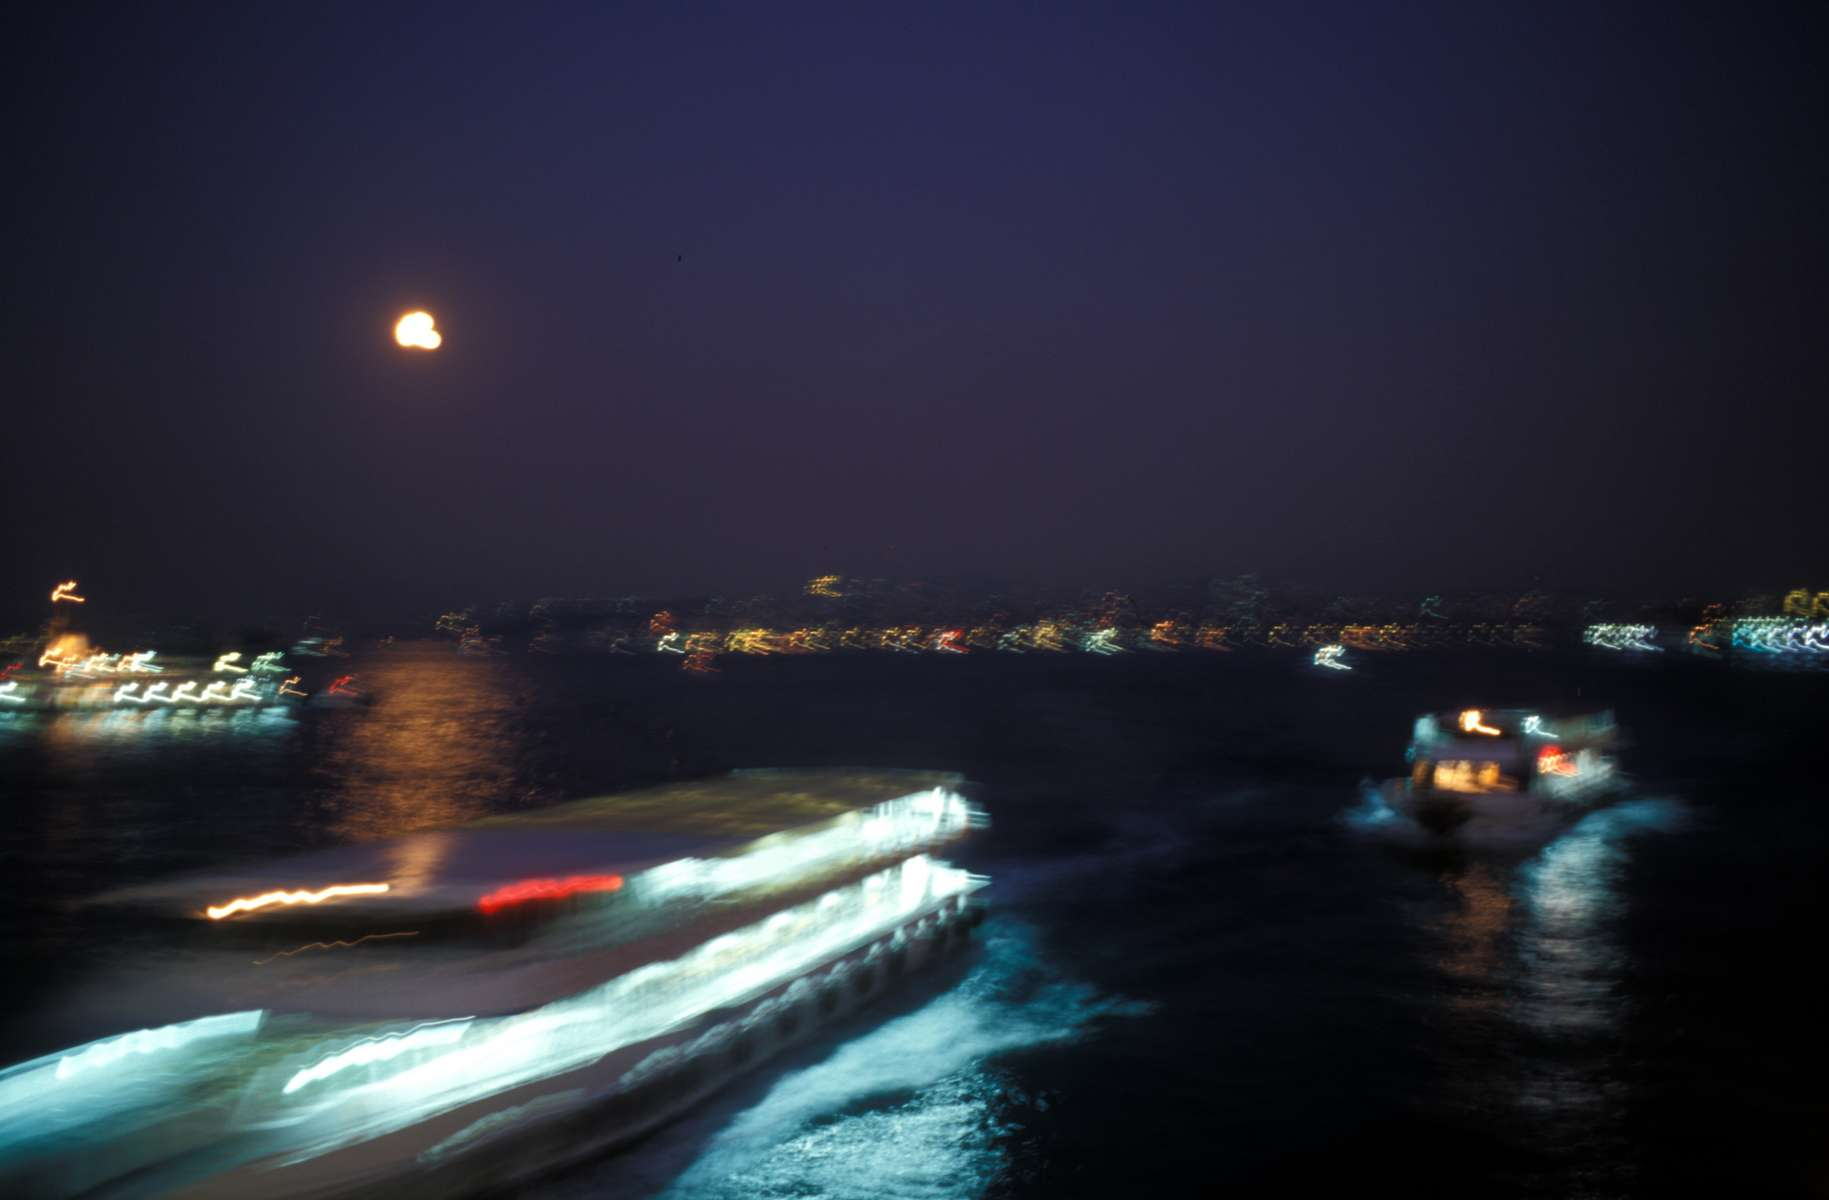 As the moon rises over the Bosphorus Straits, two ferries pass in the night. Every day thousands of people use the ferries to commute between the European and Oriental sides of the city, crossing the Golden Horn, the Marmara Sea and the Bosphorus Straits. November 2004.